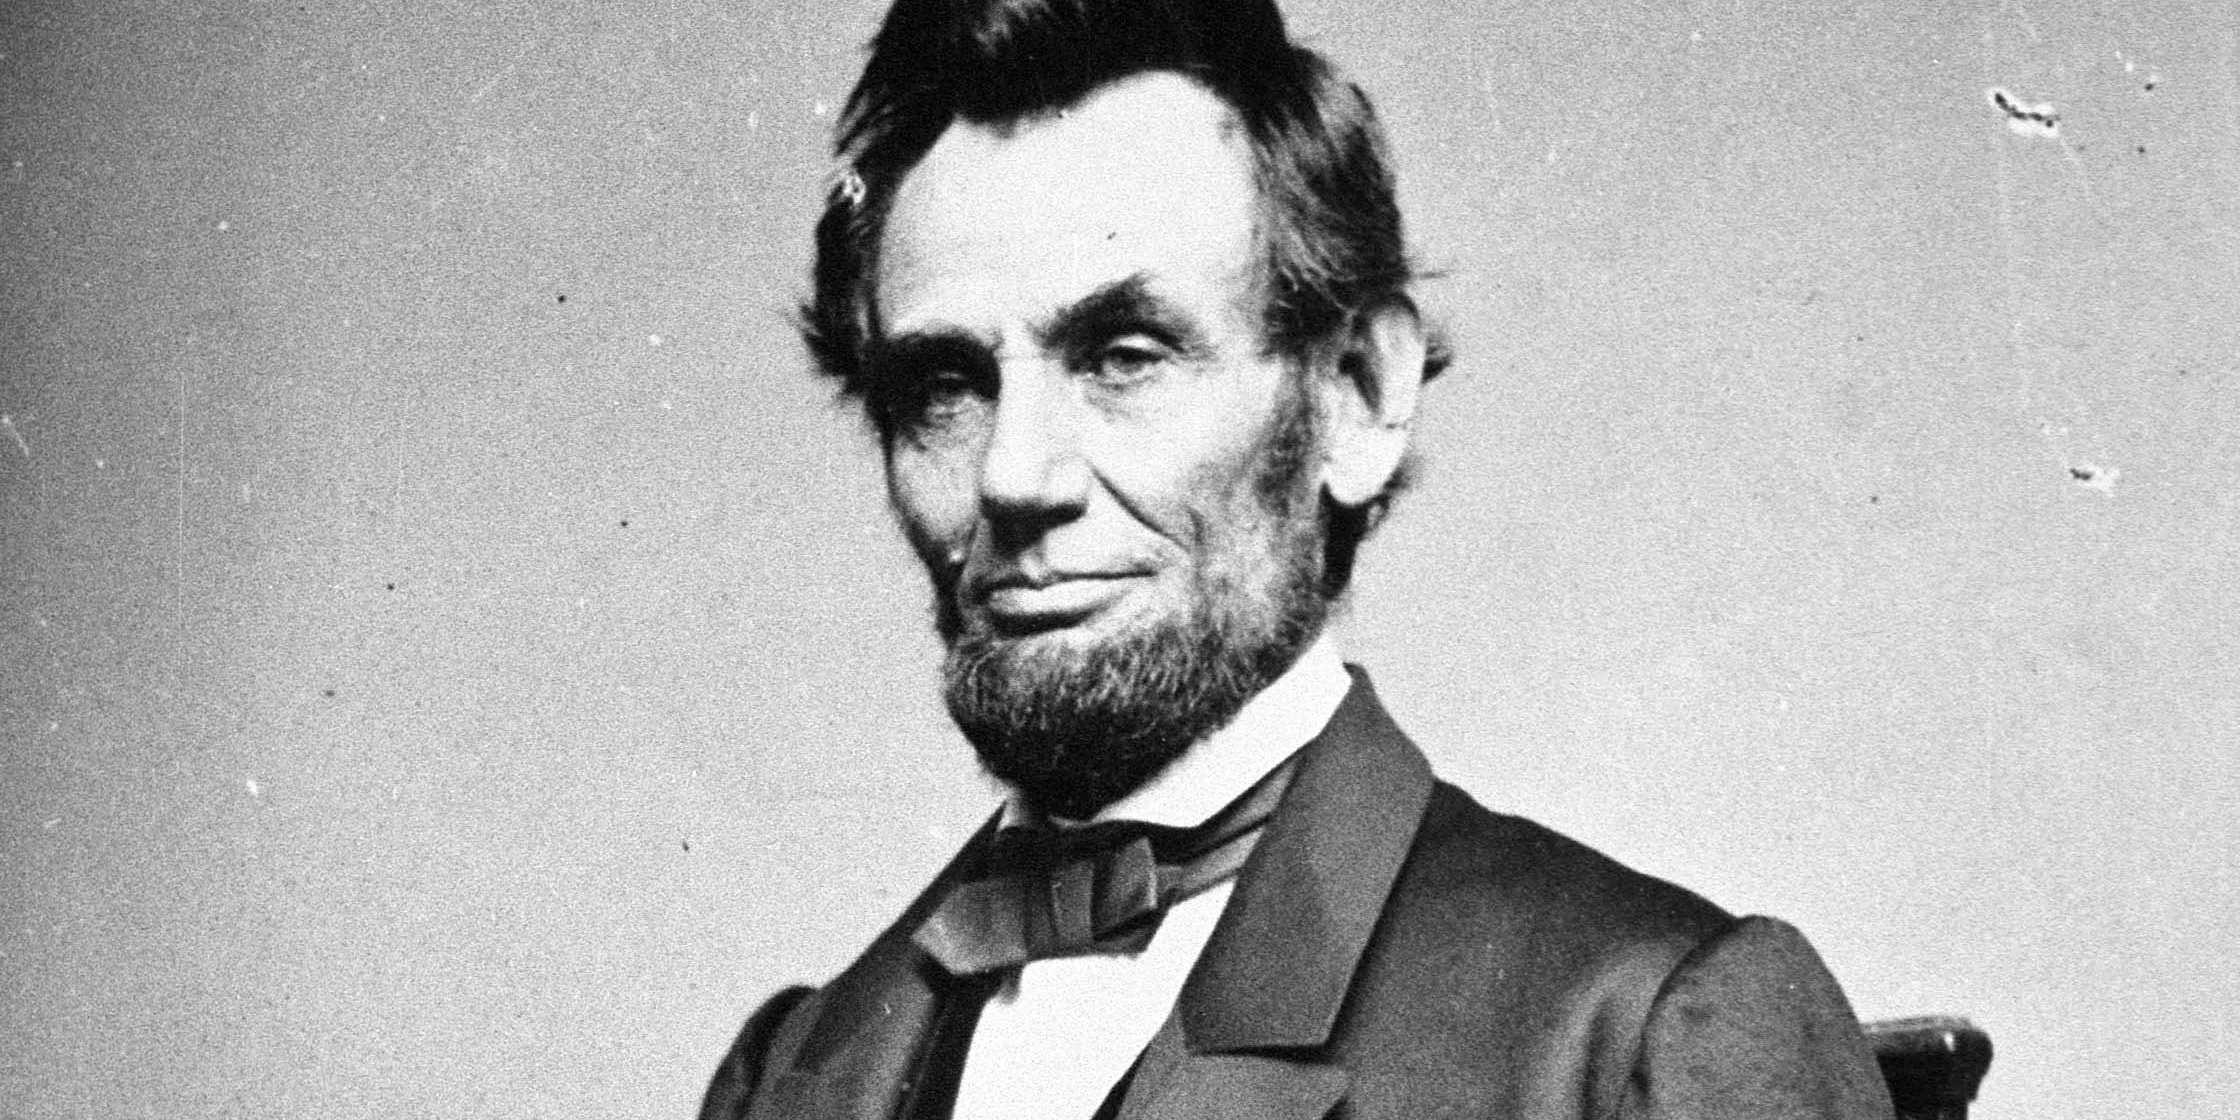 Where was Abraham Lincoln assassinated?